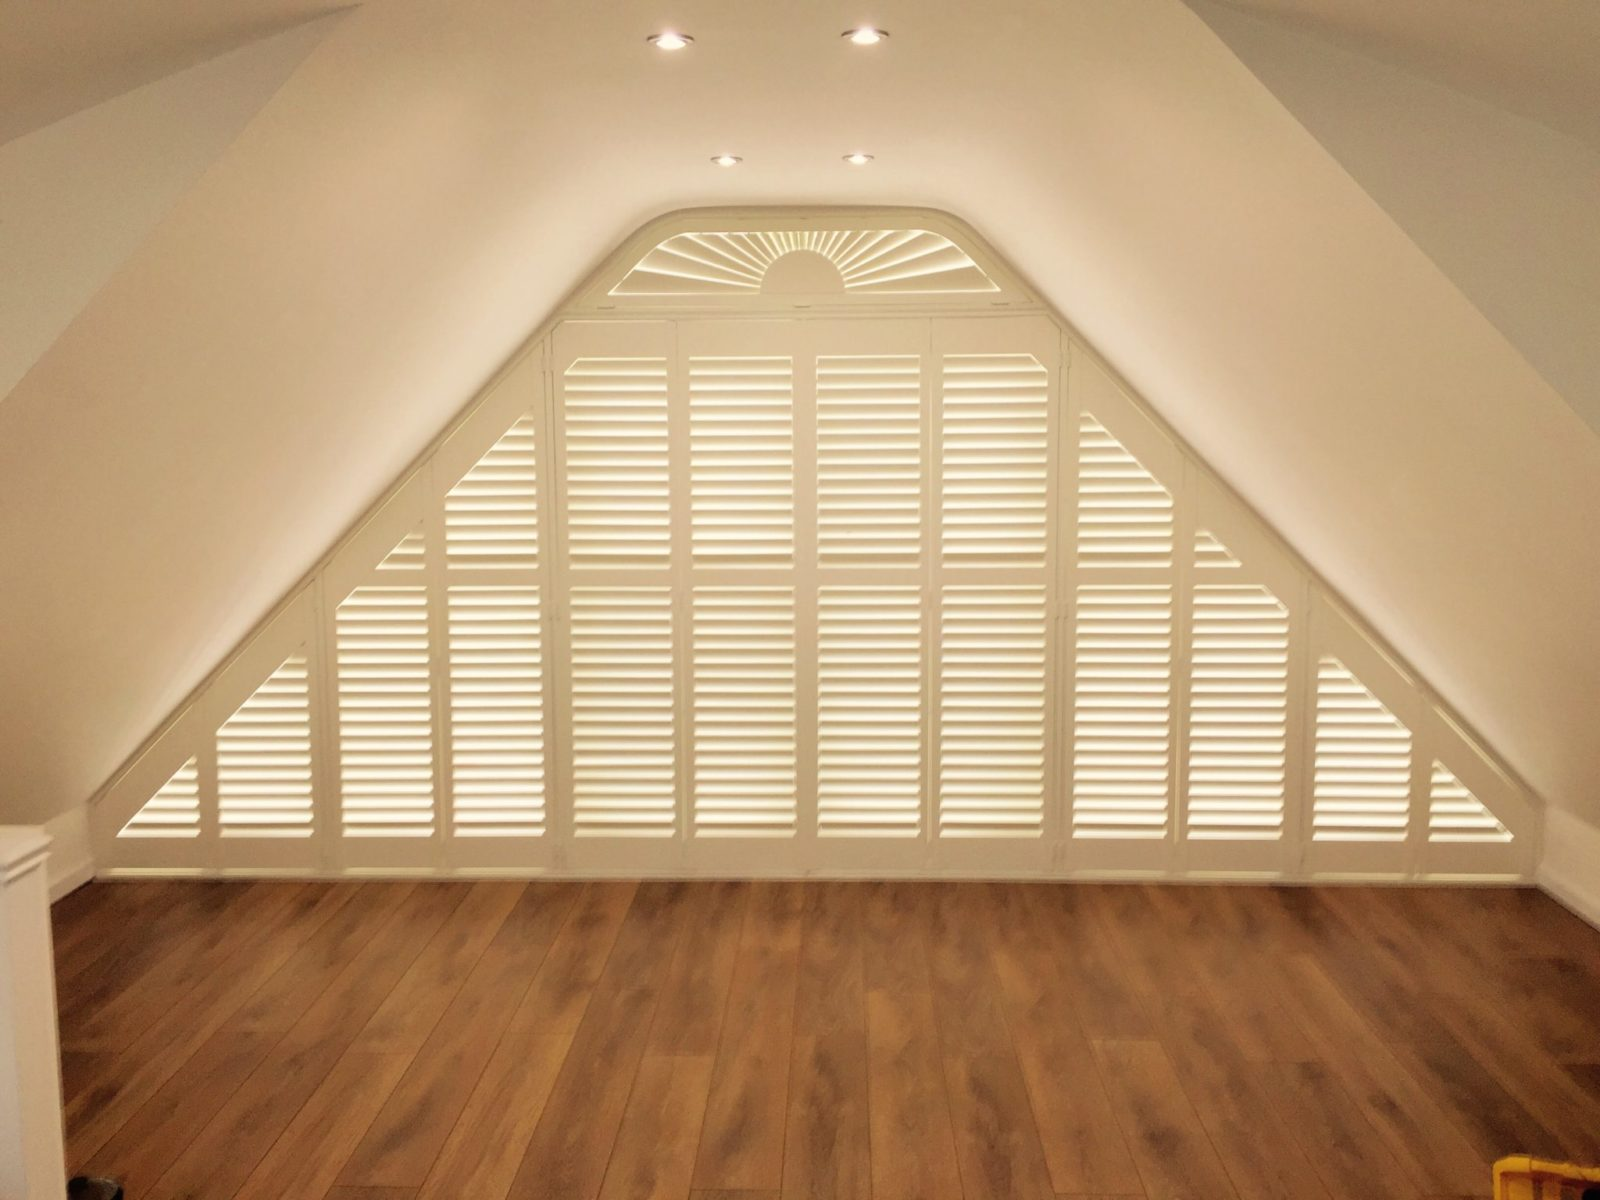 Triangle windows photos supplying wooden window shutters for - Cherry Tree Shutters Plantation Shutters In Portsmouth Gosport Fareham Southsea Southampton Hampshire